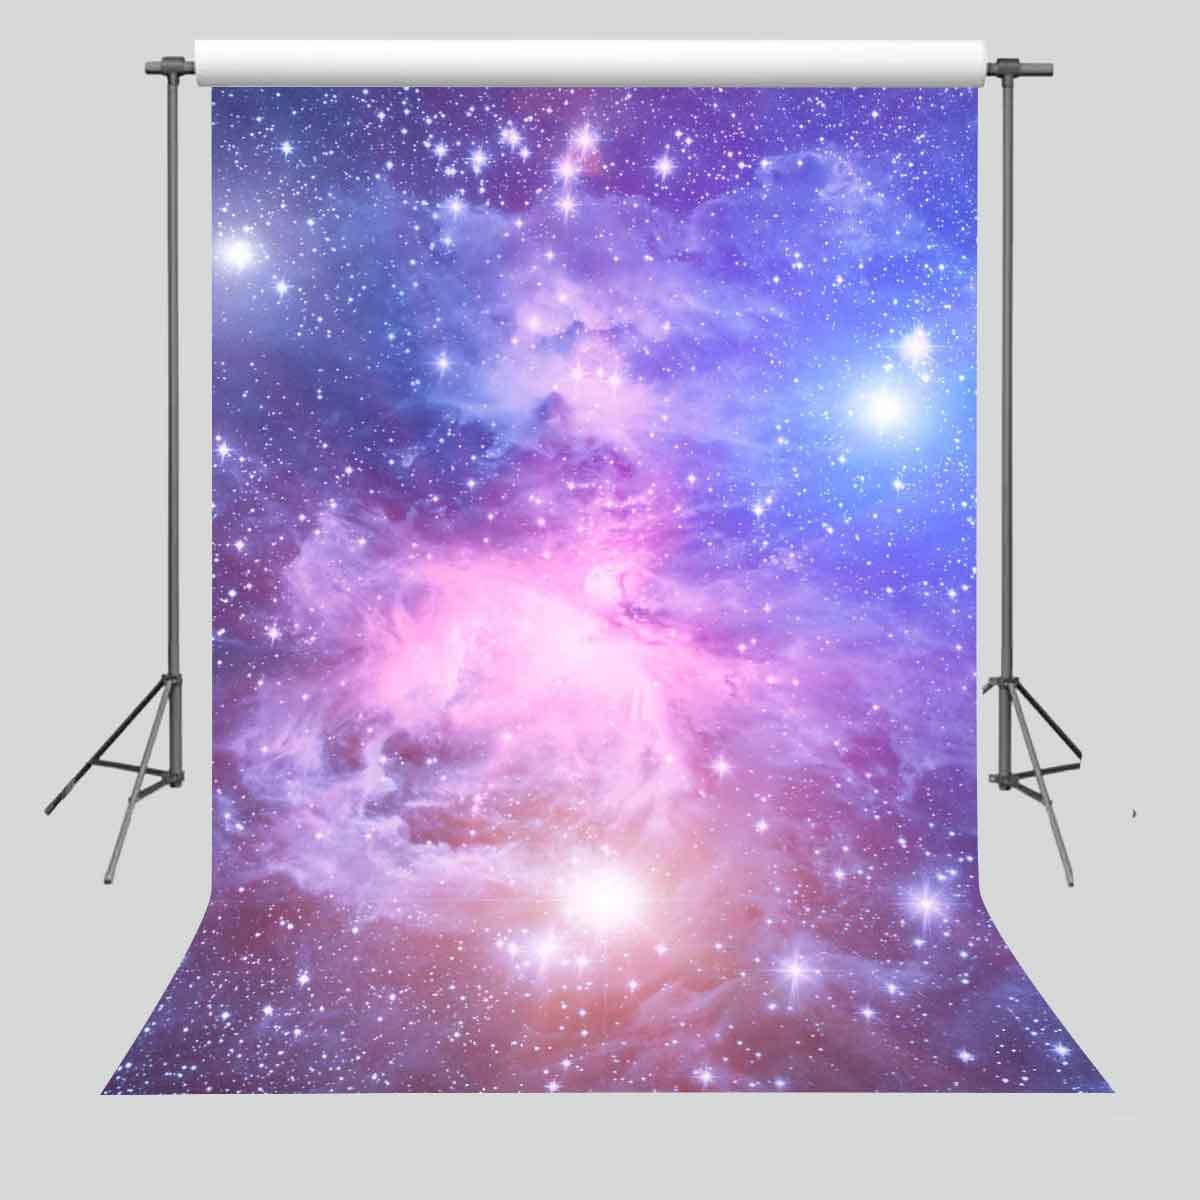 FUERMOR 5x7ft Purple Sky Star Backdrop Photography Props Space Galaxy Background GEFU398